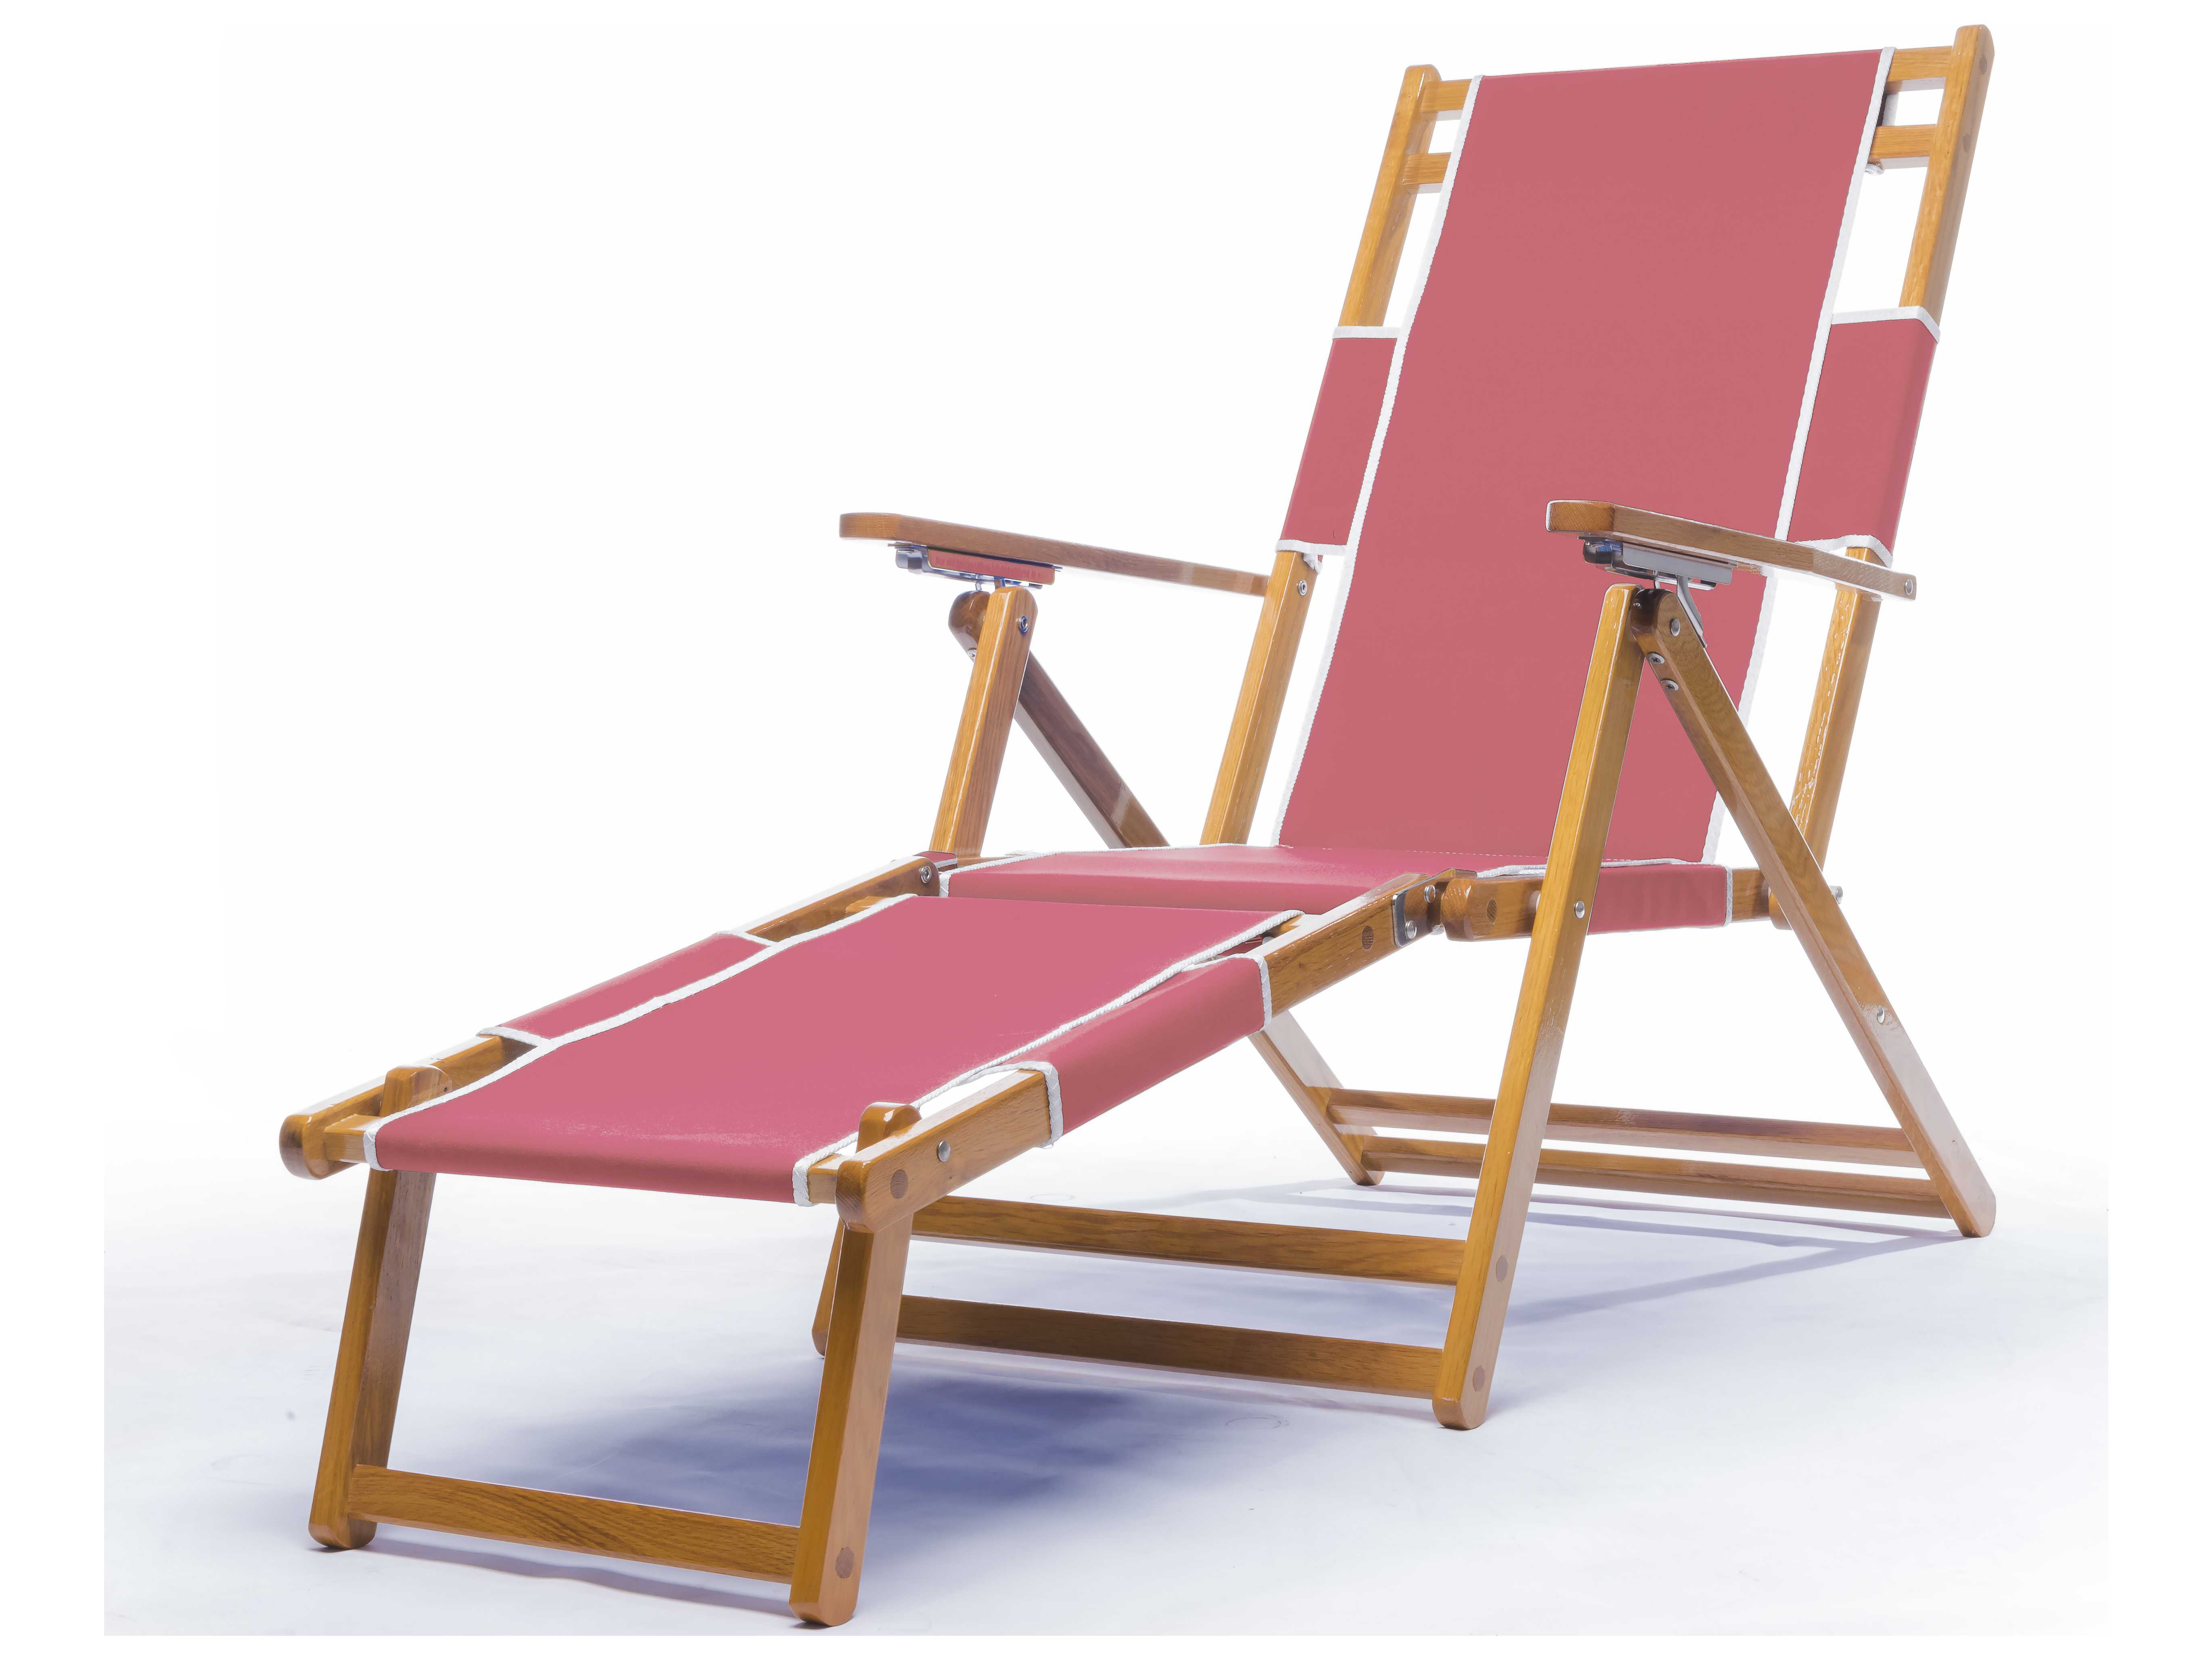 Frankford Umbrellas Wooden Beach Lounge Chair with